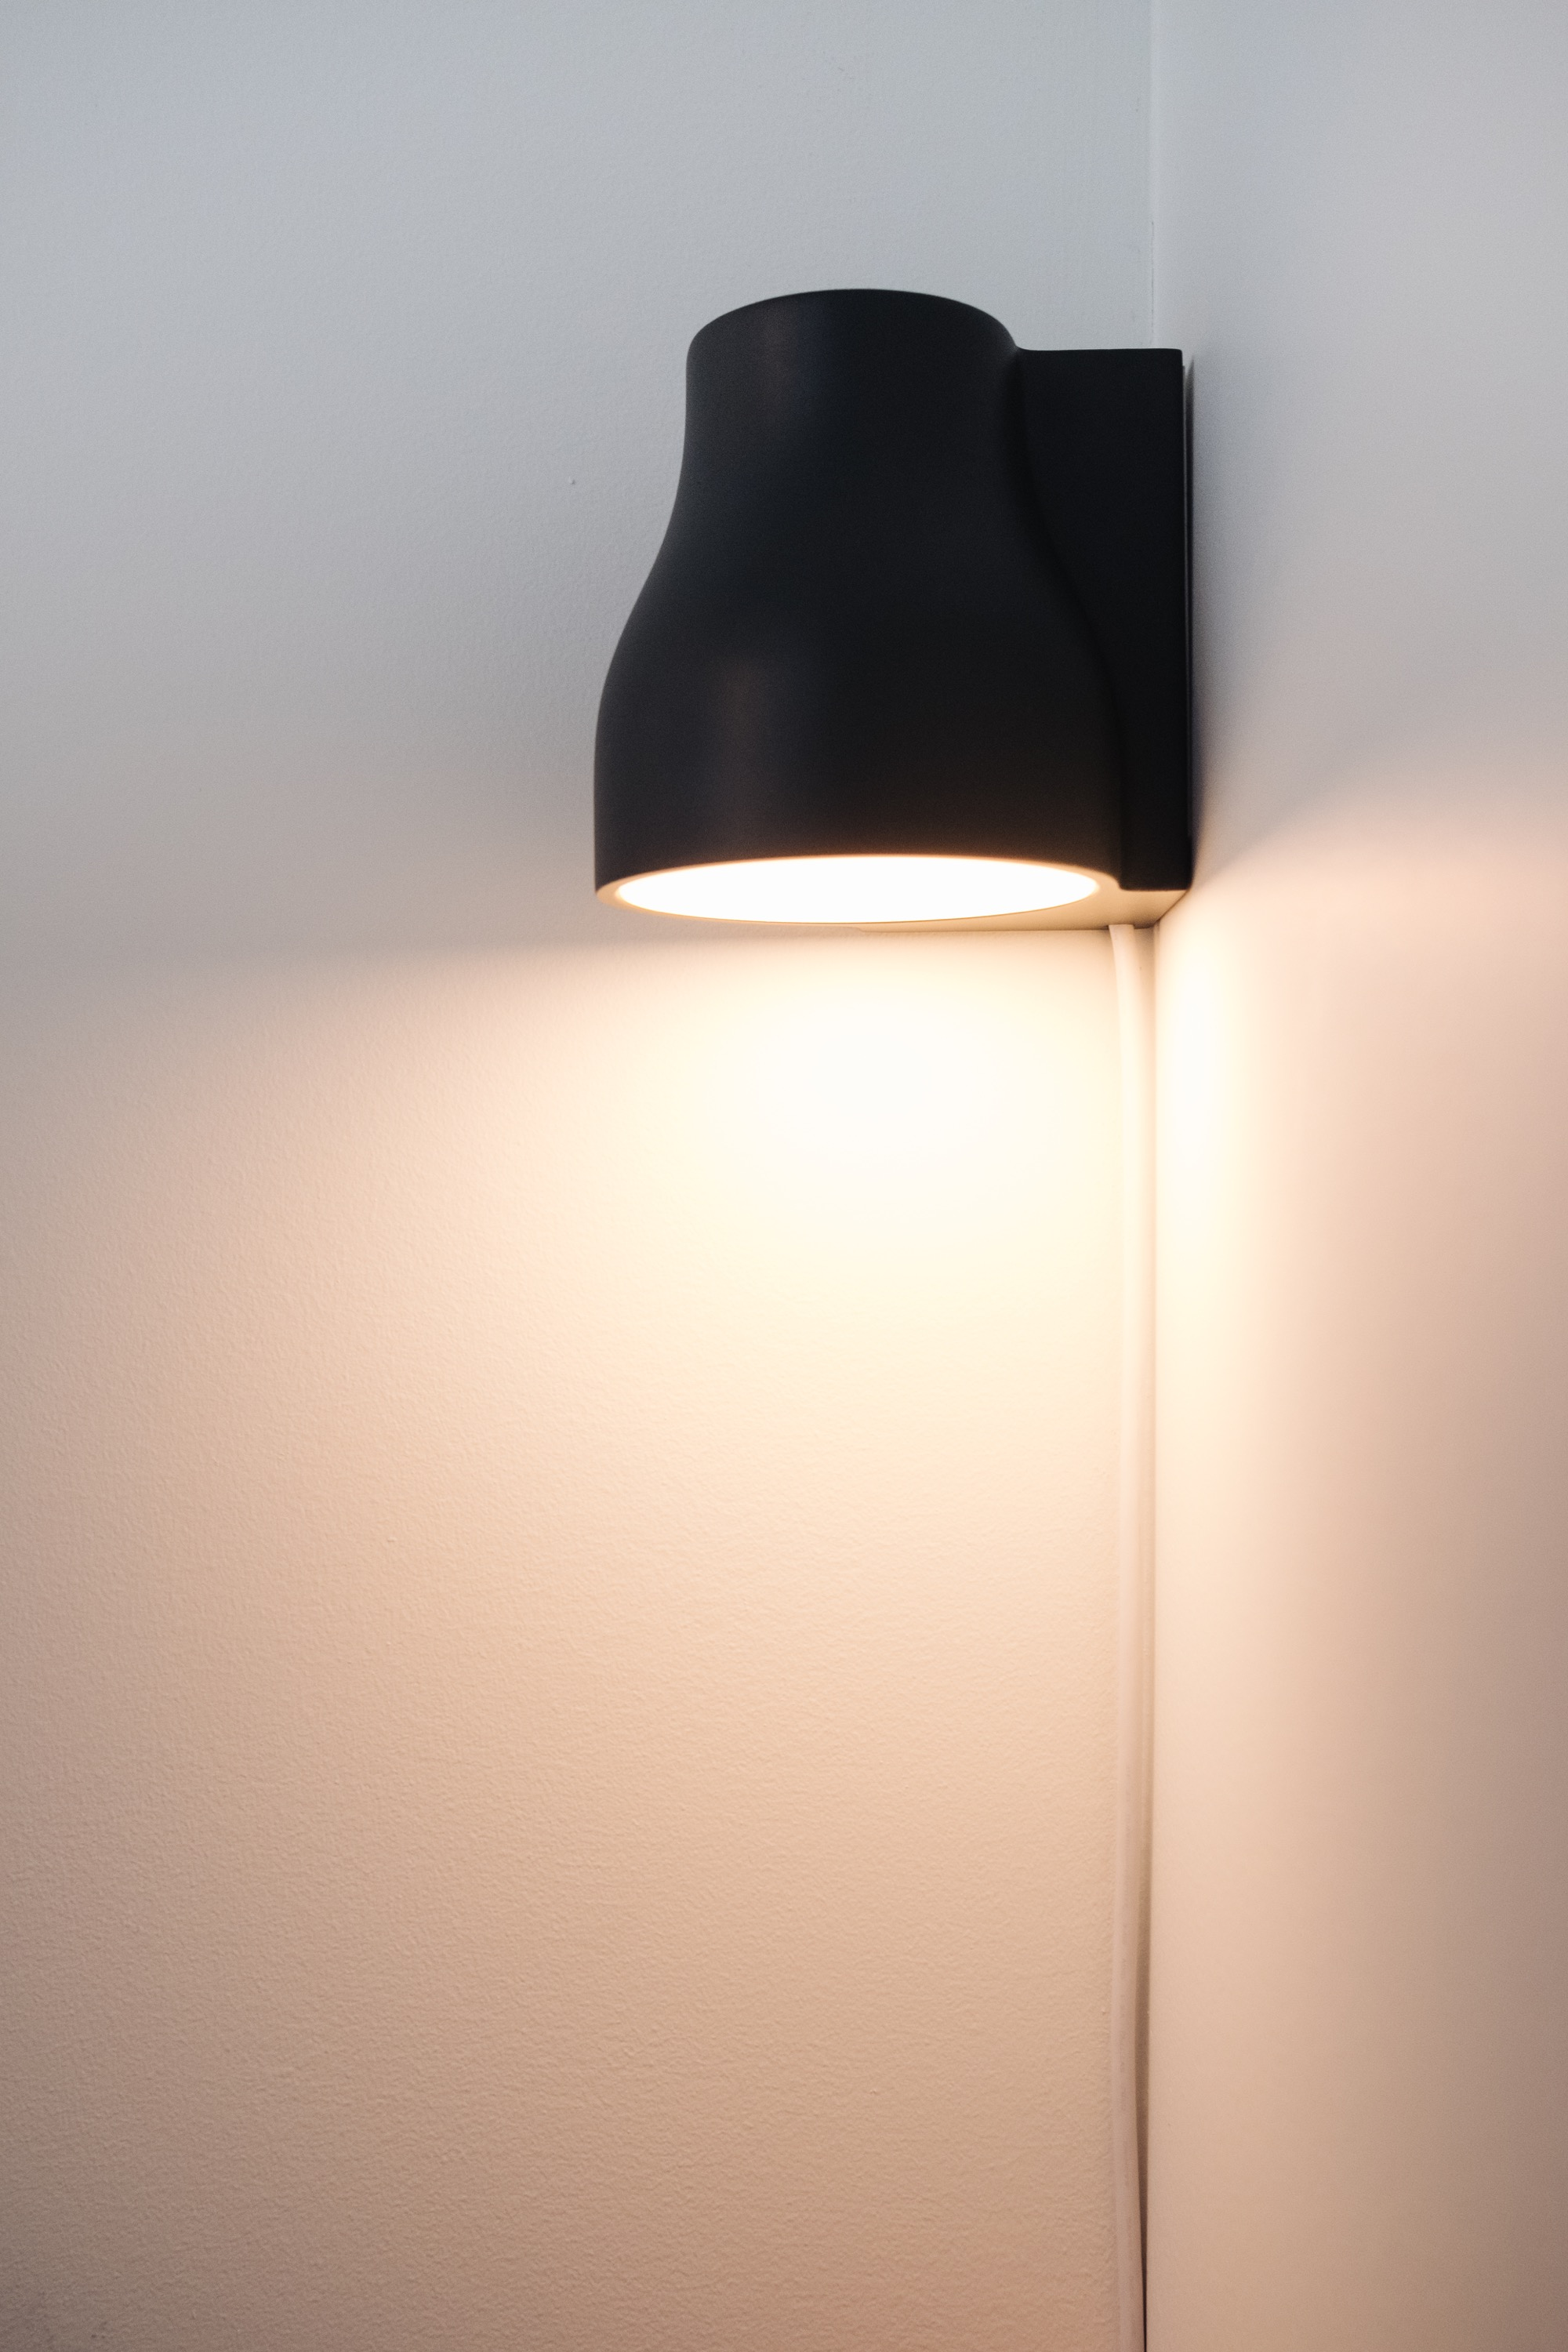 Lamp in corner with light on